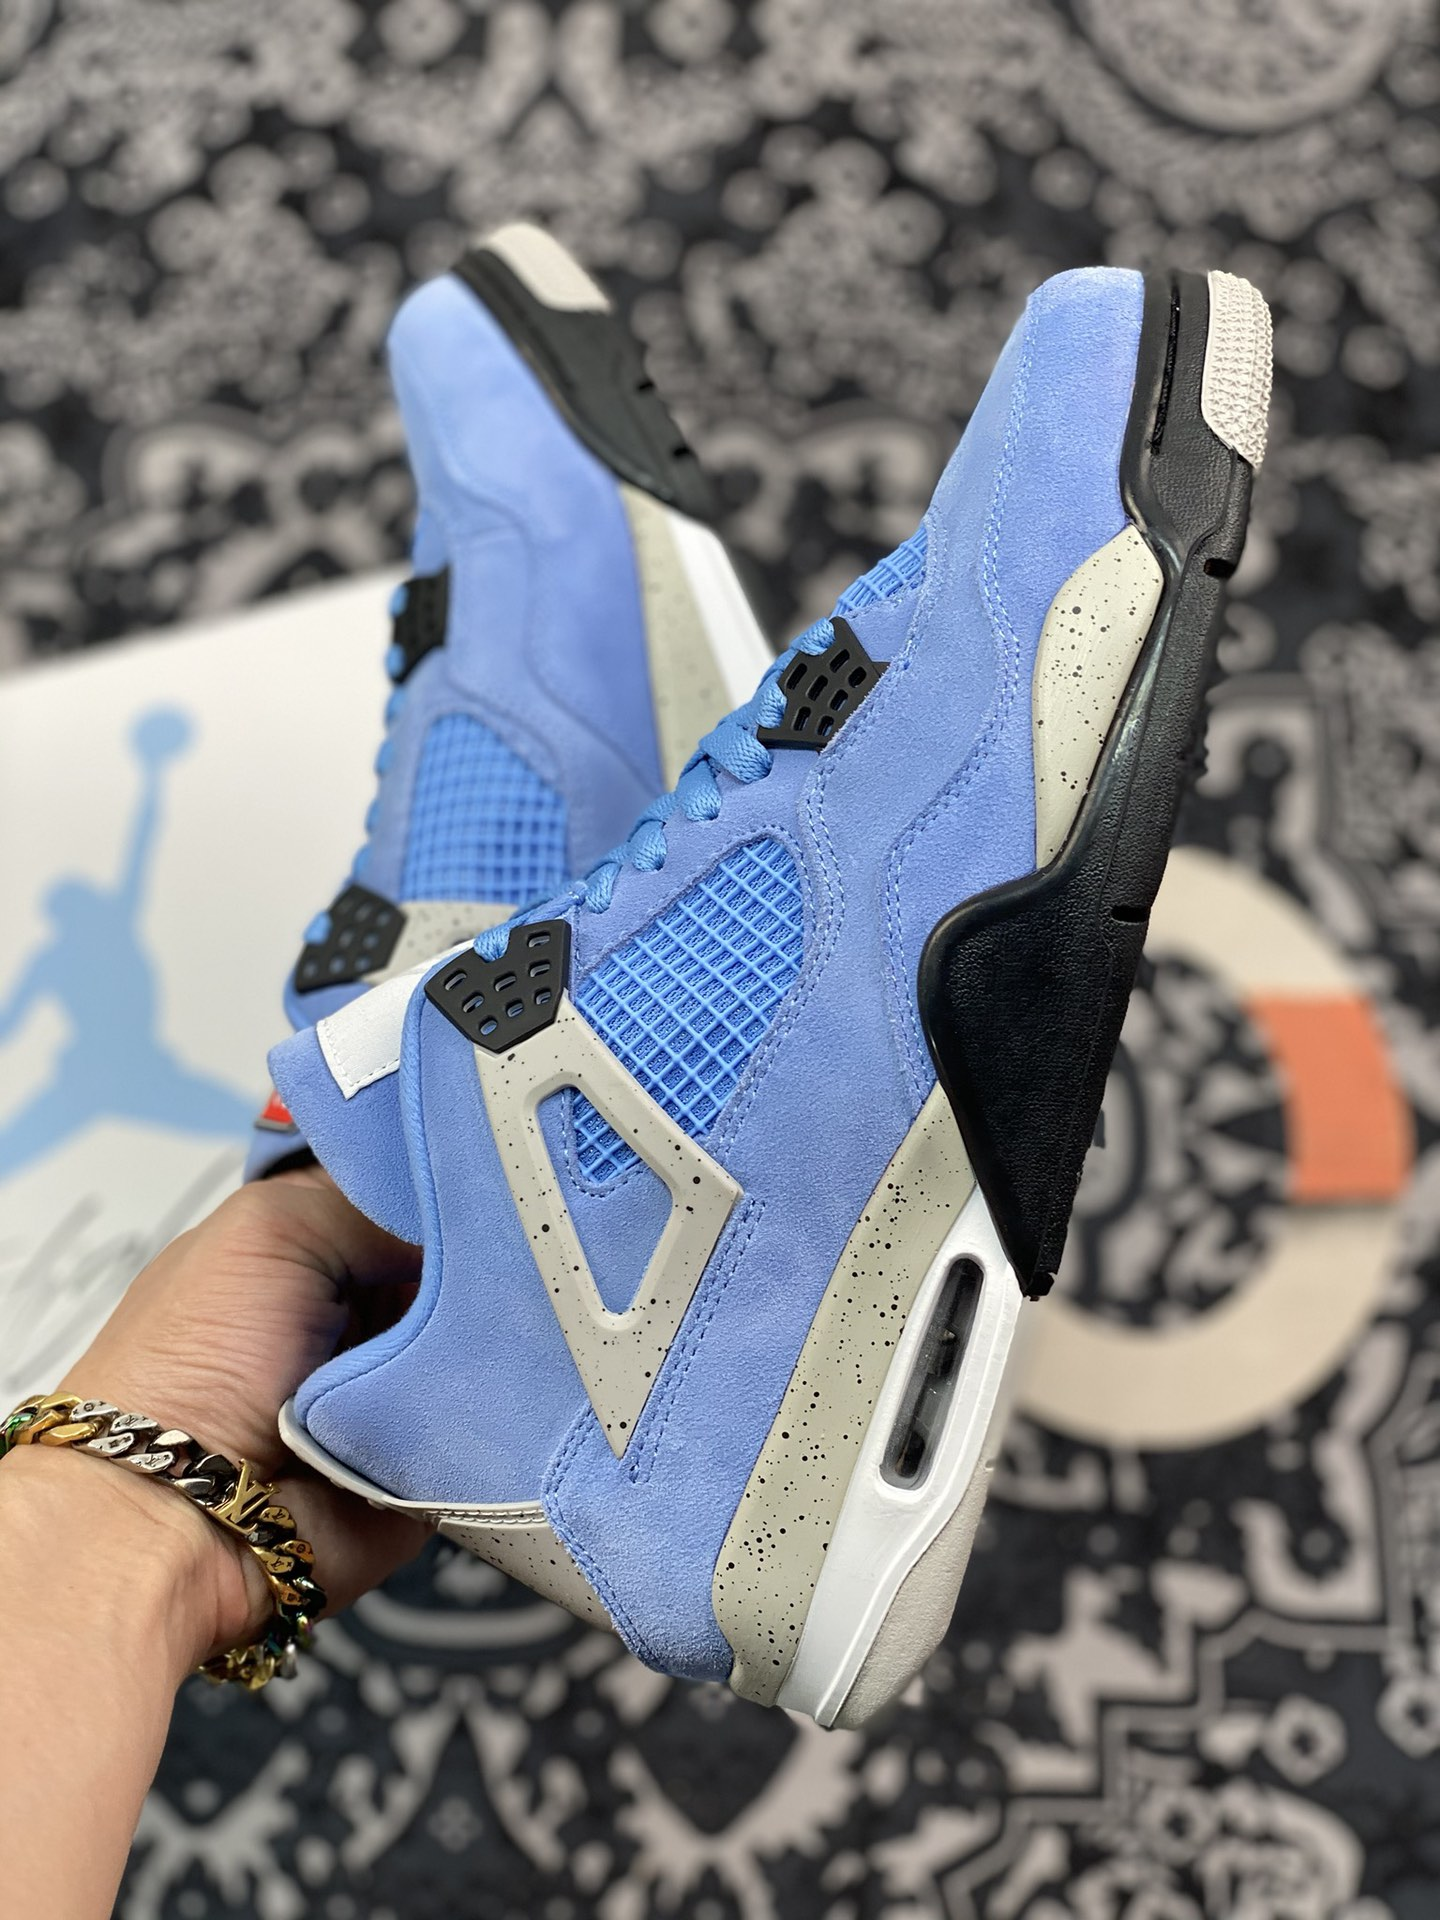 Why Air Jordan 4 Retro 'University Blue' is the Best Sneakers You Can Buy in 2021